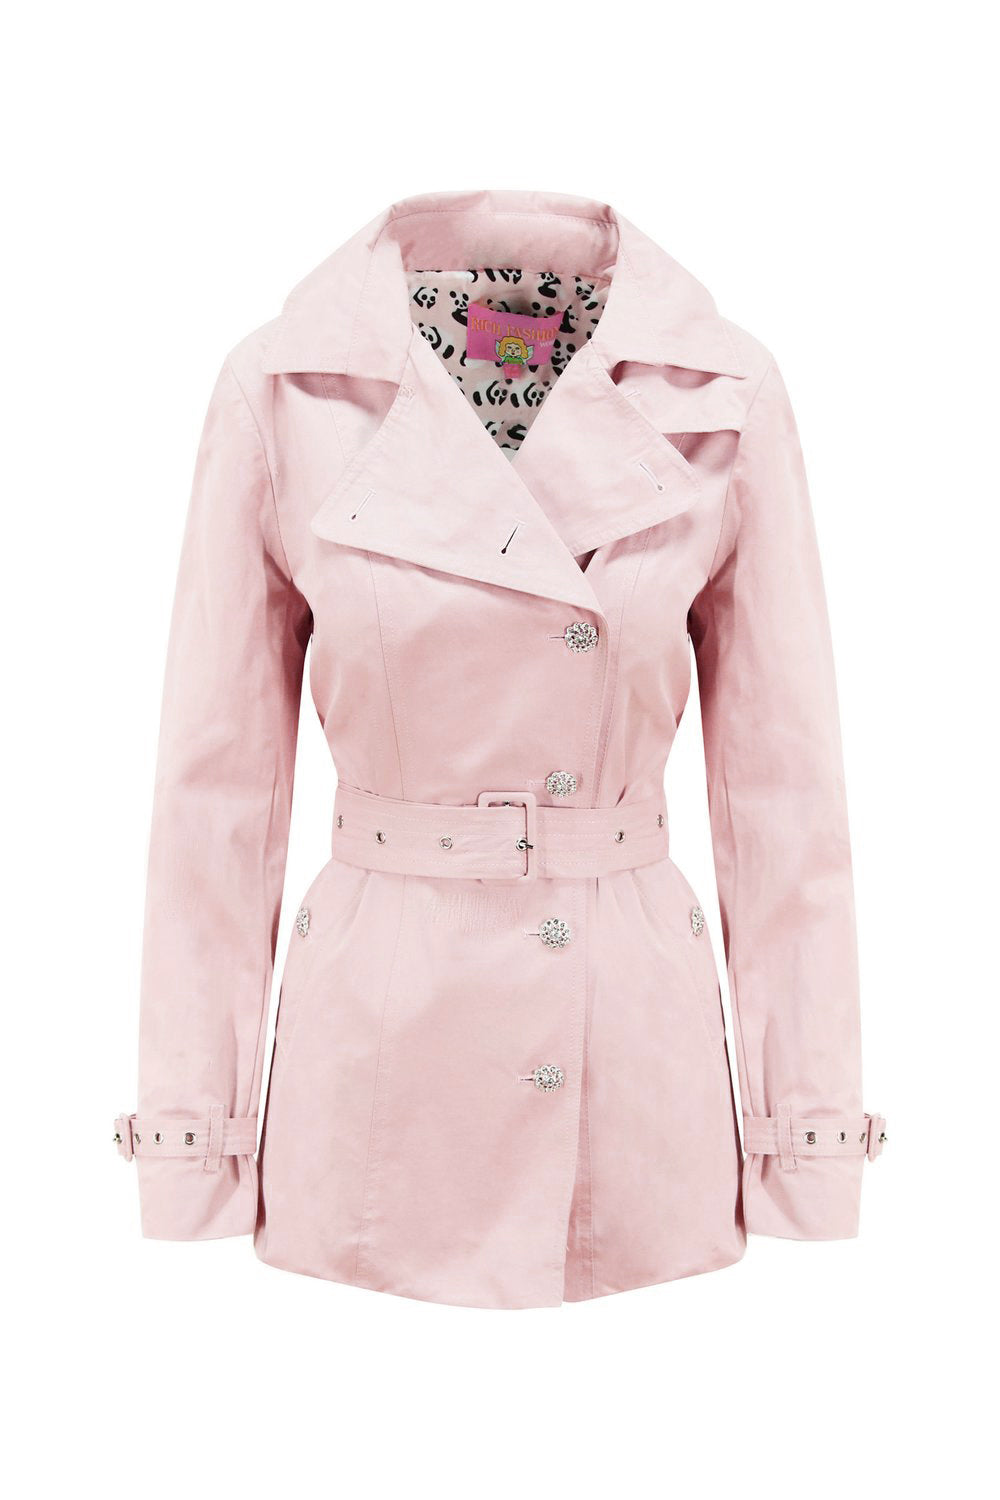 Panda Pink Short Trench Coat